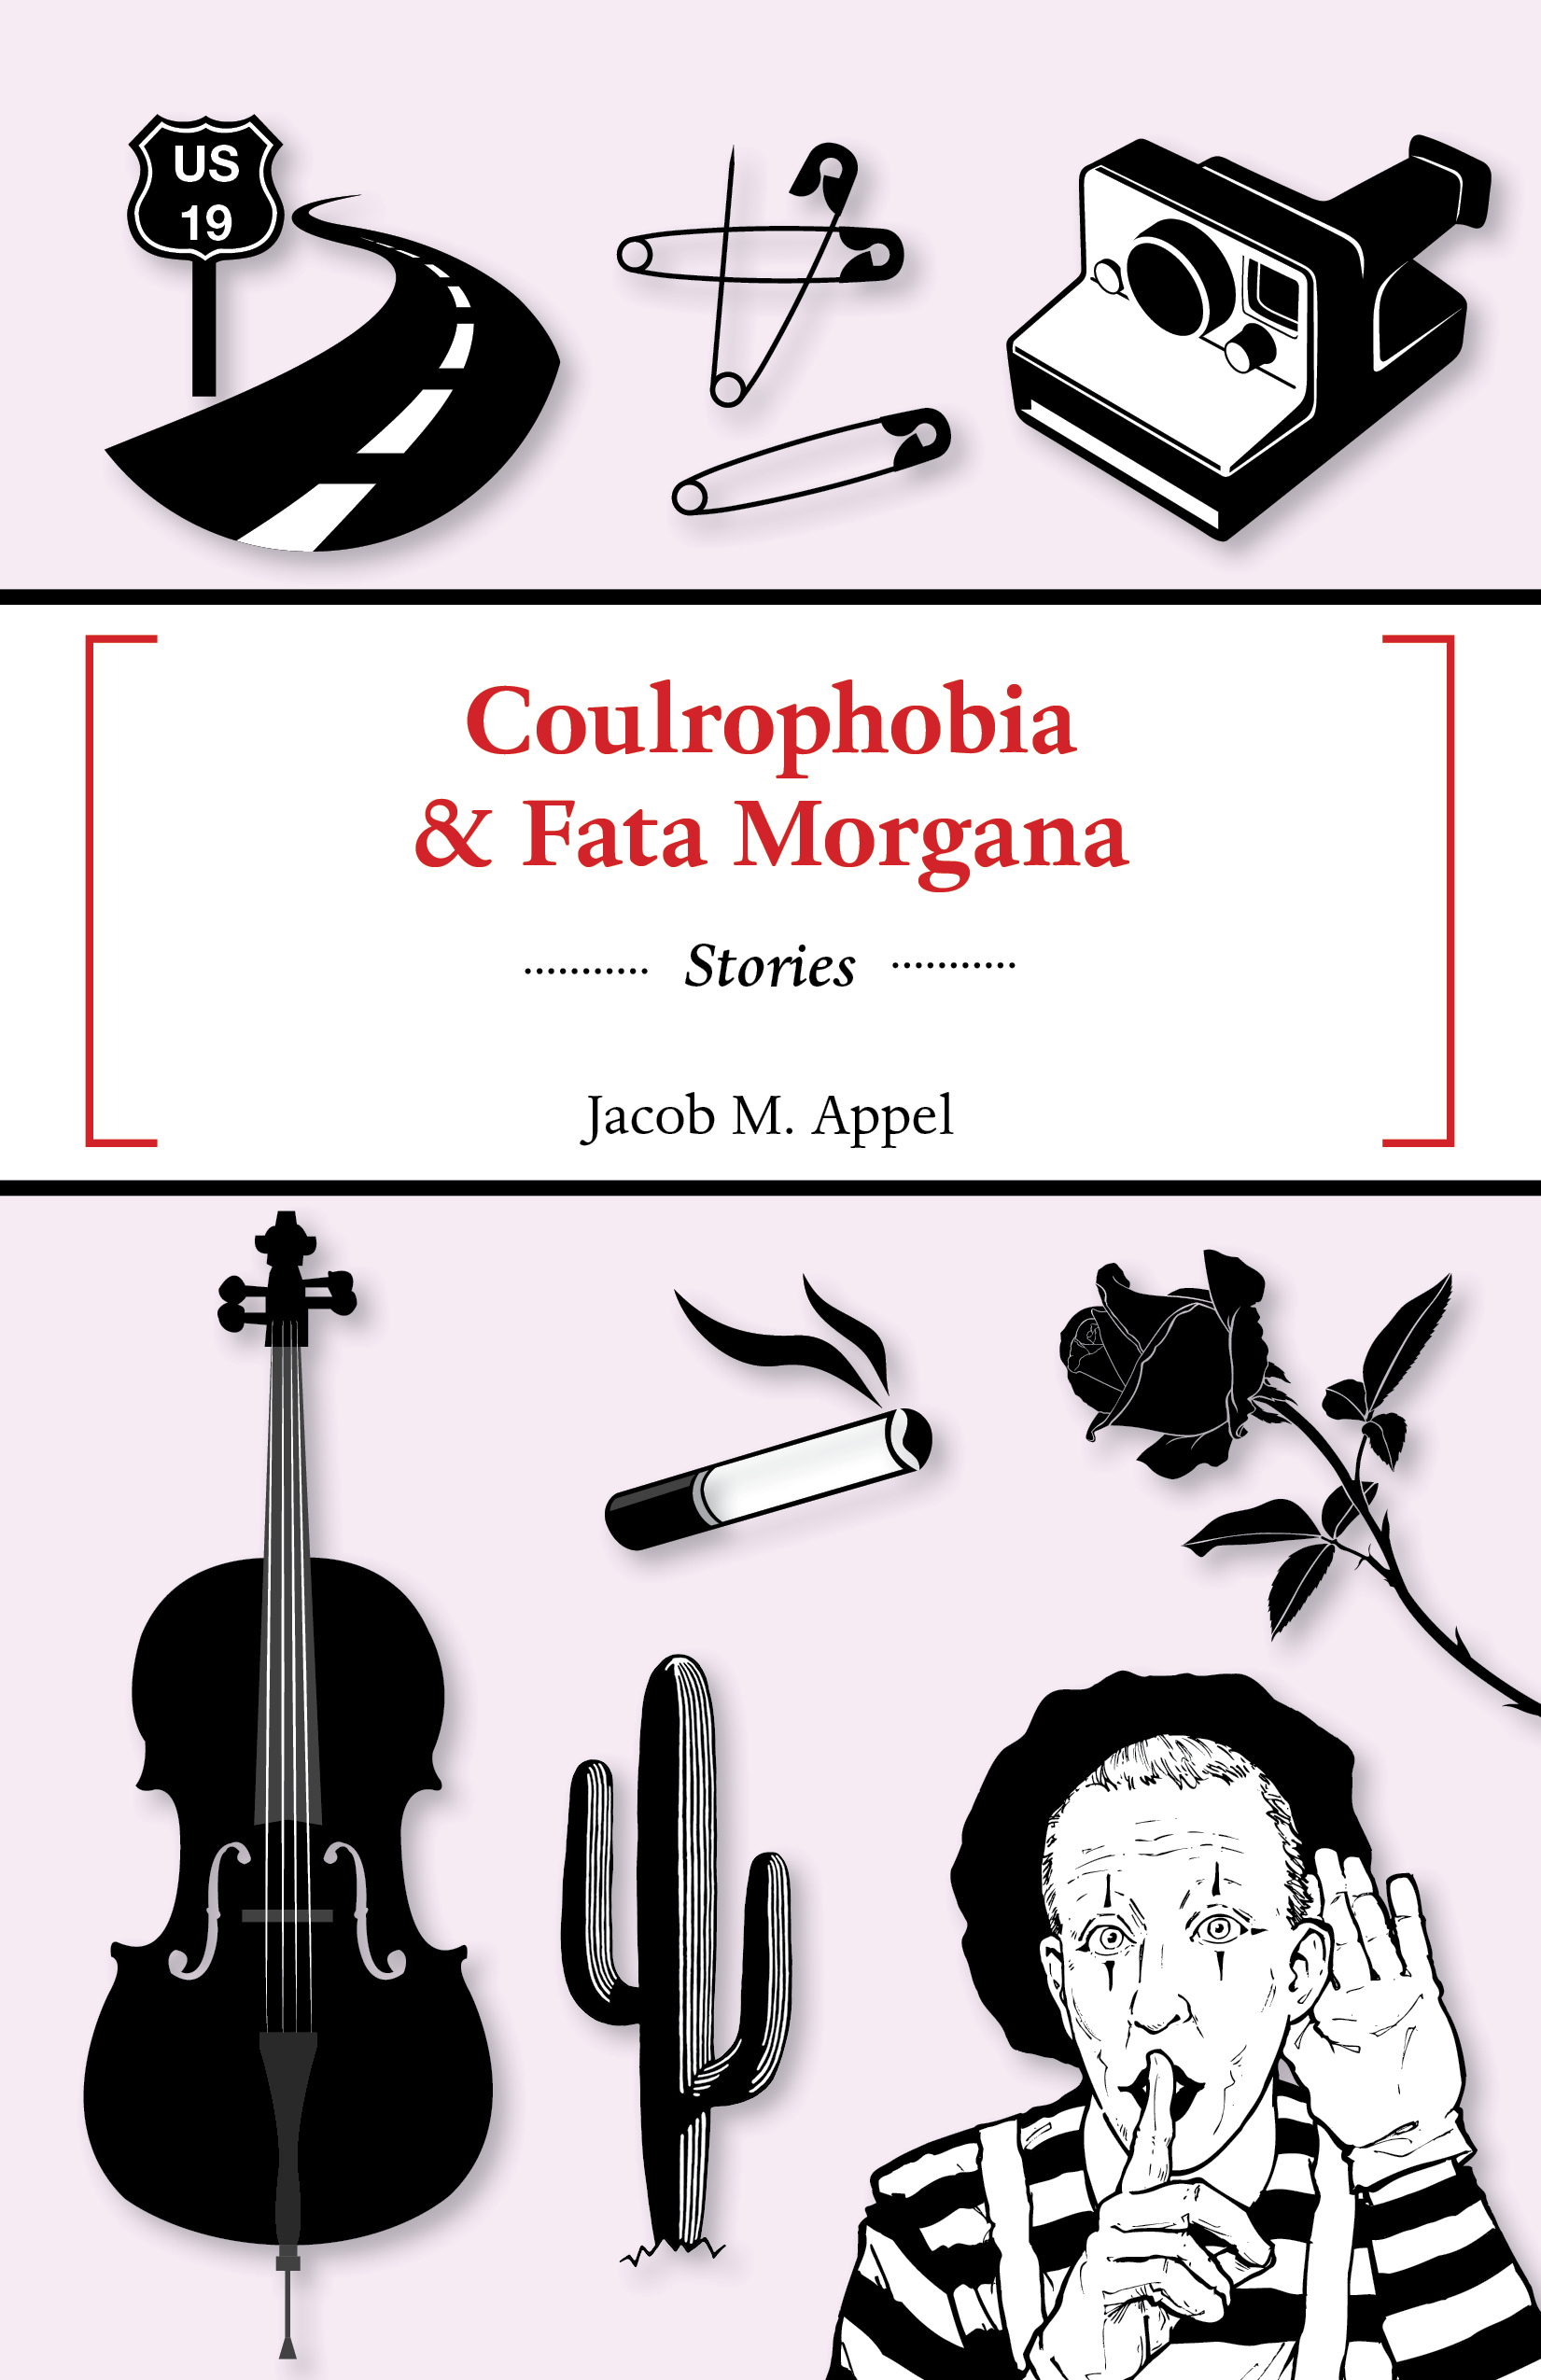 Coulrophobia & Fata Morgana